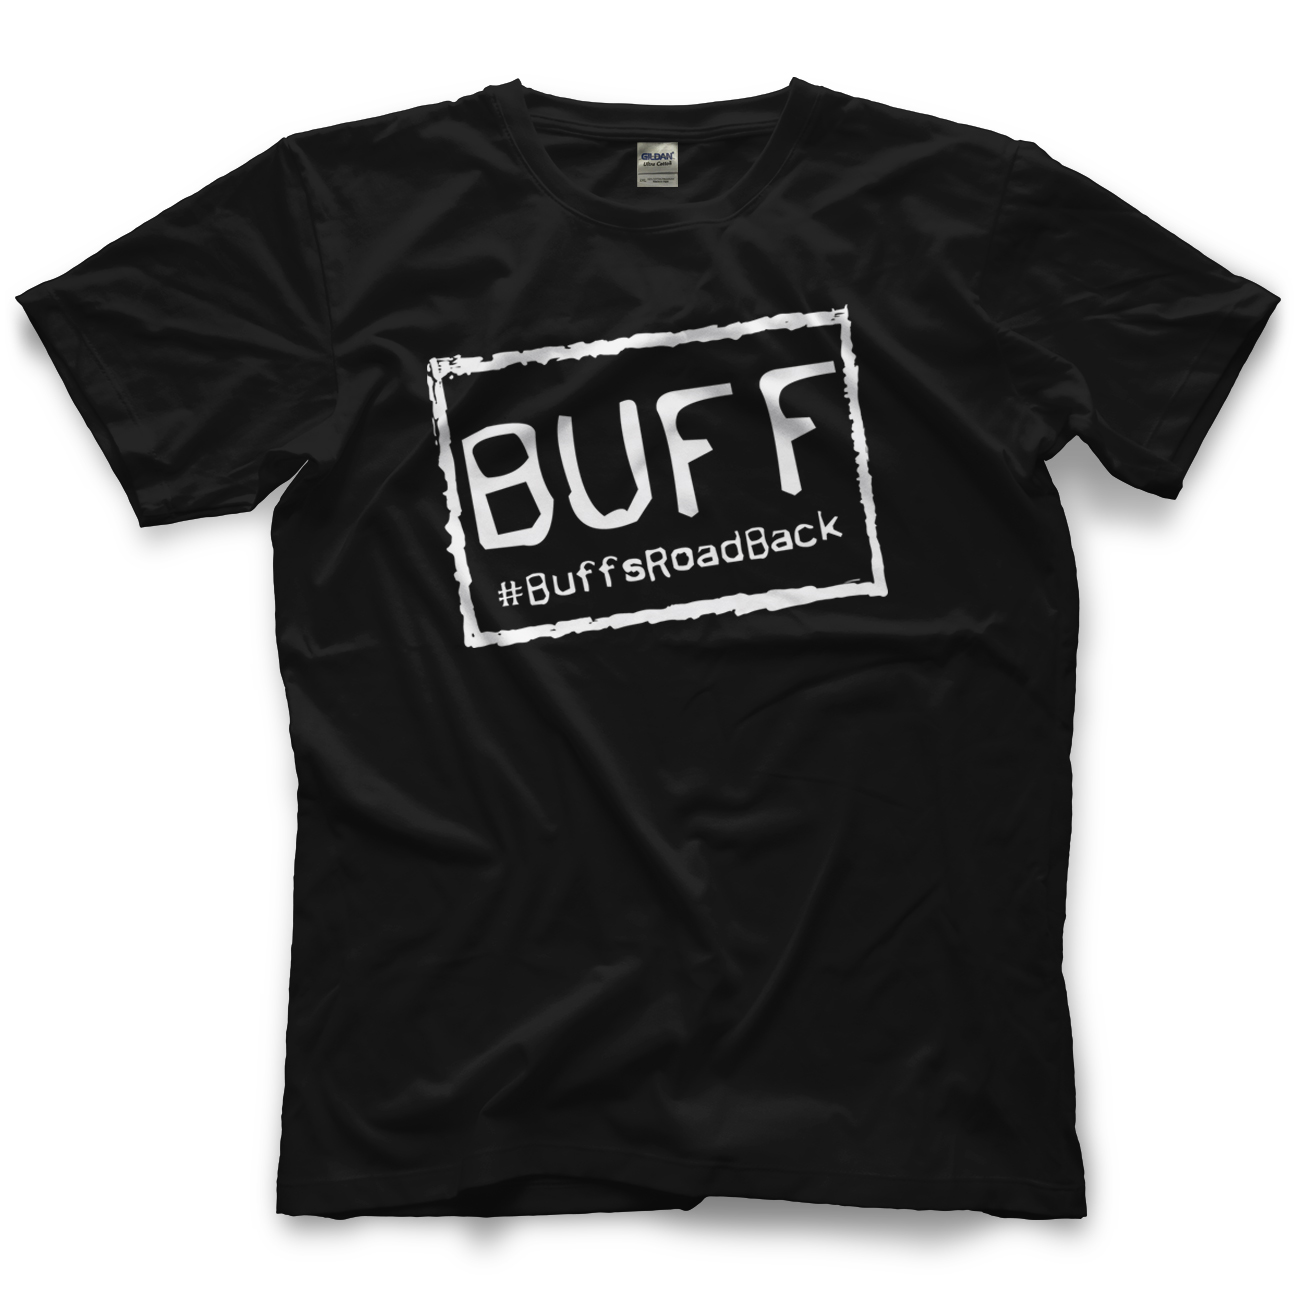 Buff Bagwell Buffs Road Back T-shirt